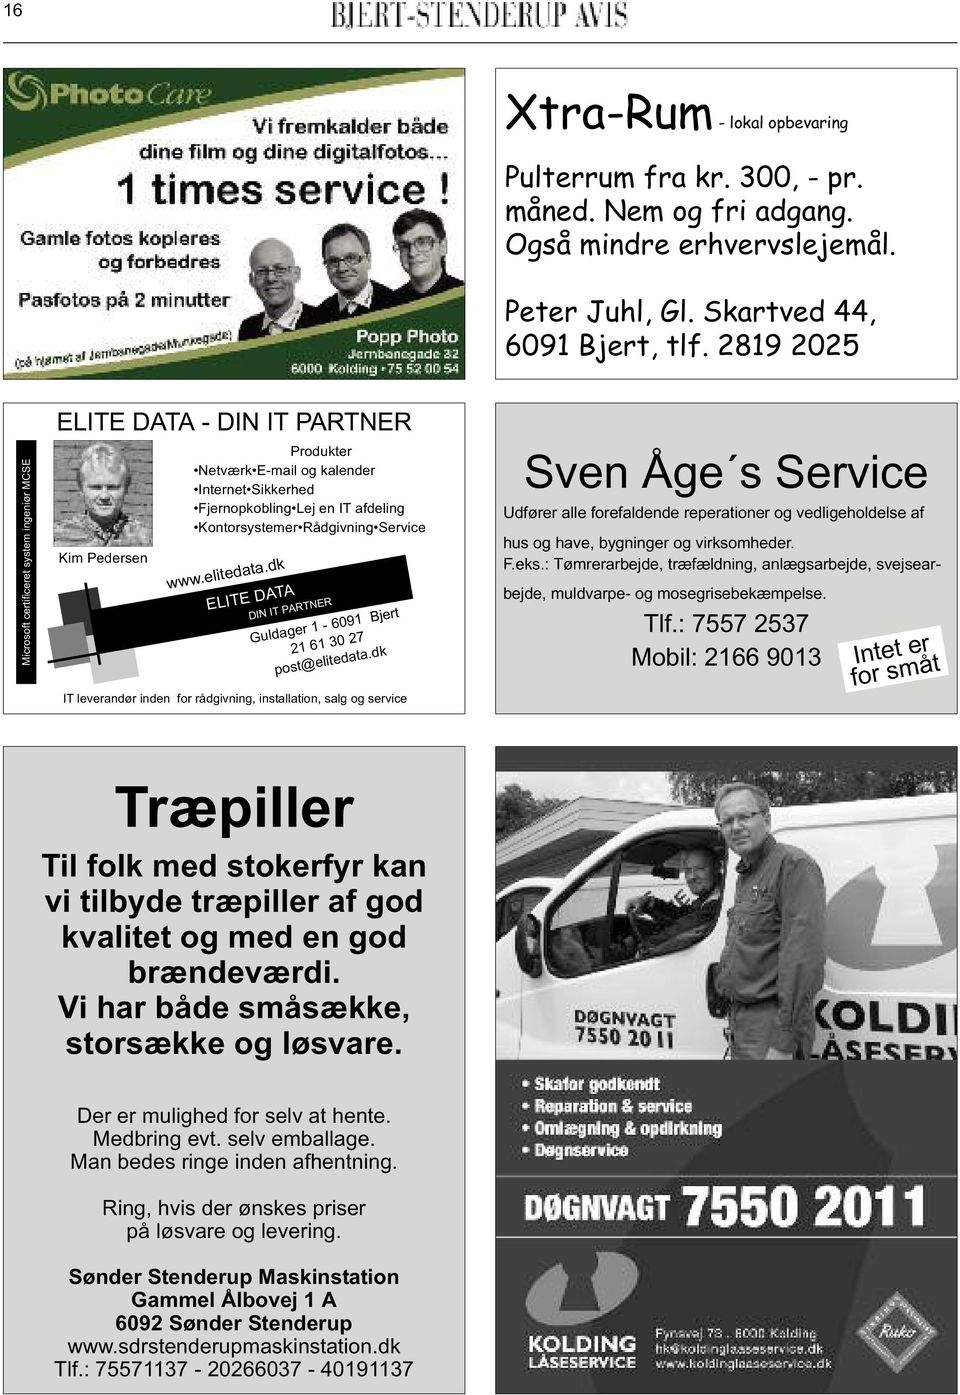 Rådgivning Service www.elitedata.dk ELITE DATA DIN IT PARTNER Guldager 1-6091 Bjert 21 61 30 27 post@elitedata.